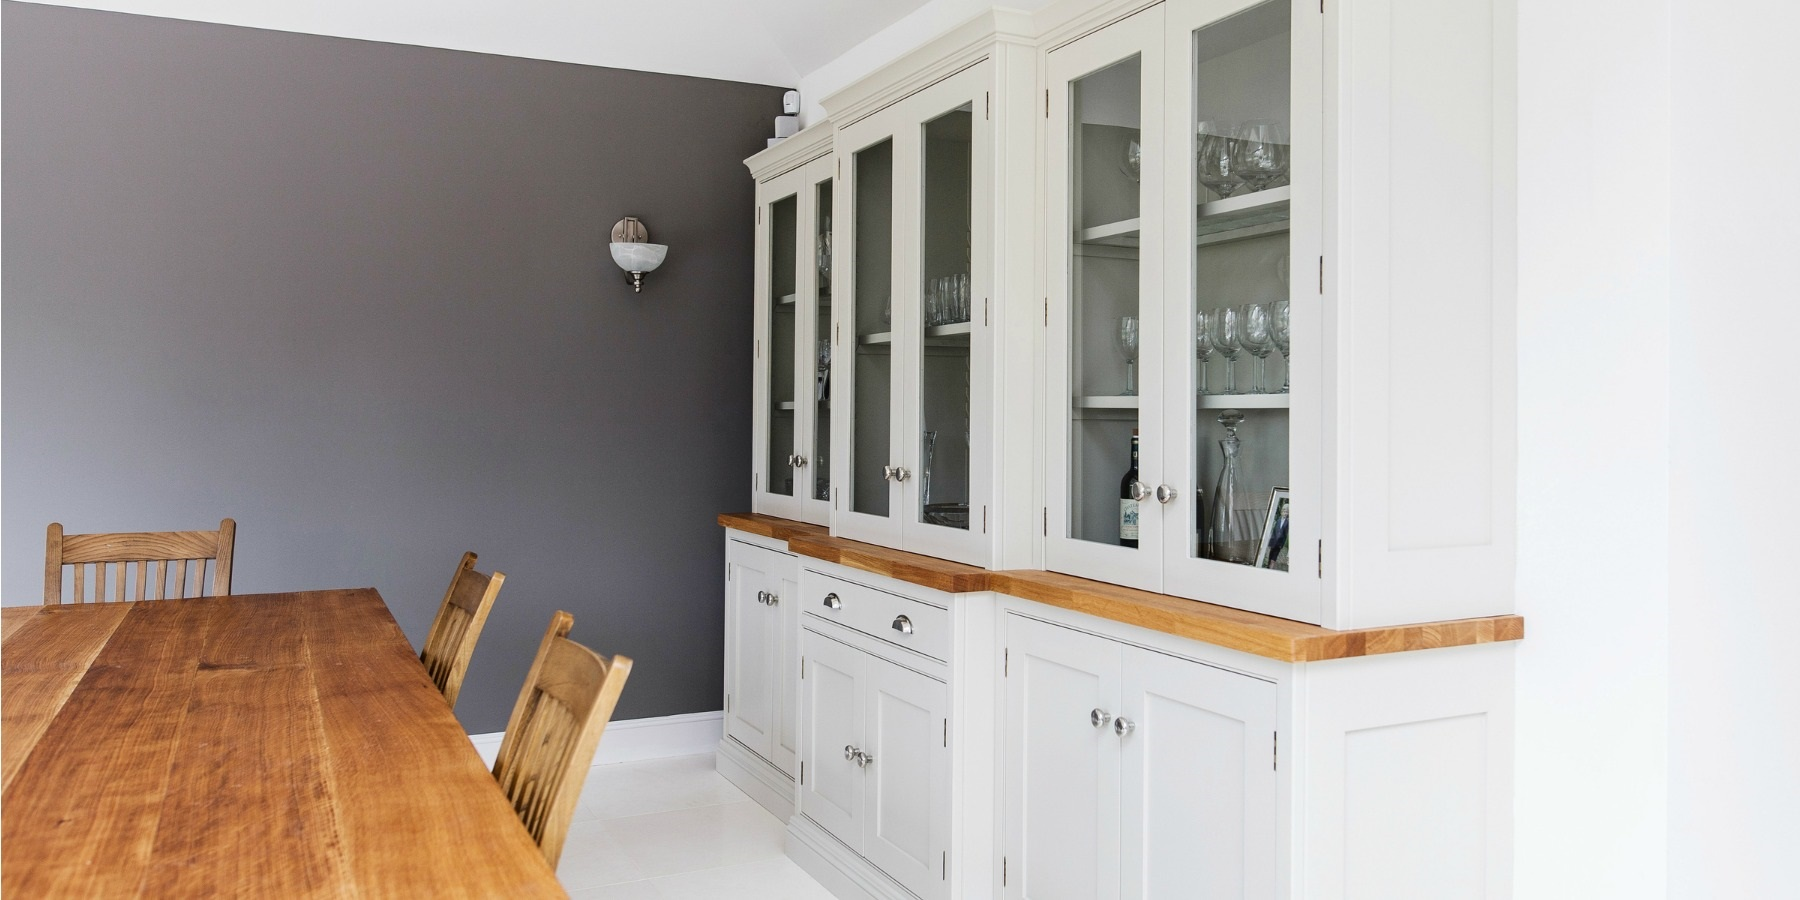 Burlanes Interiors - Burlanes design a functional, organised beautiful kitchen